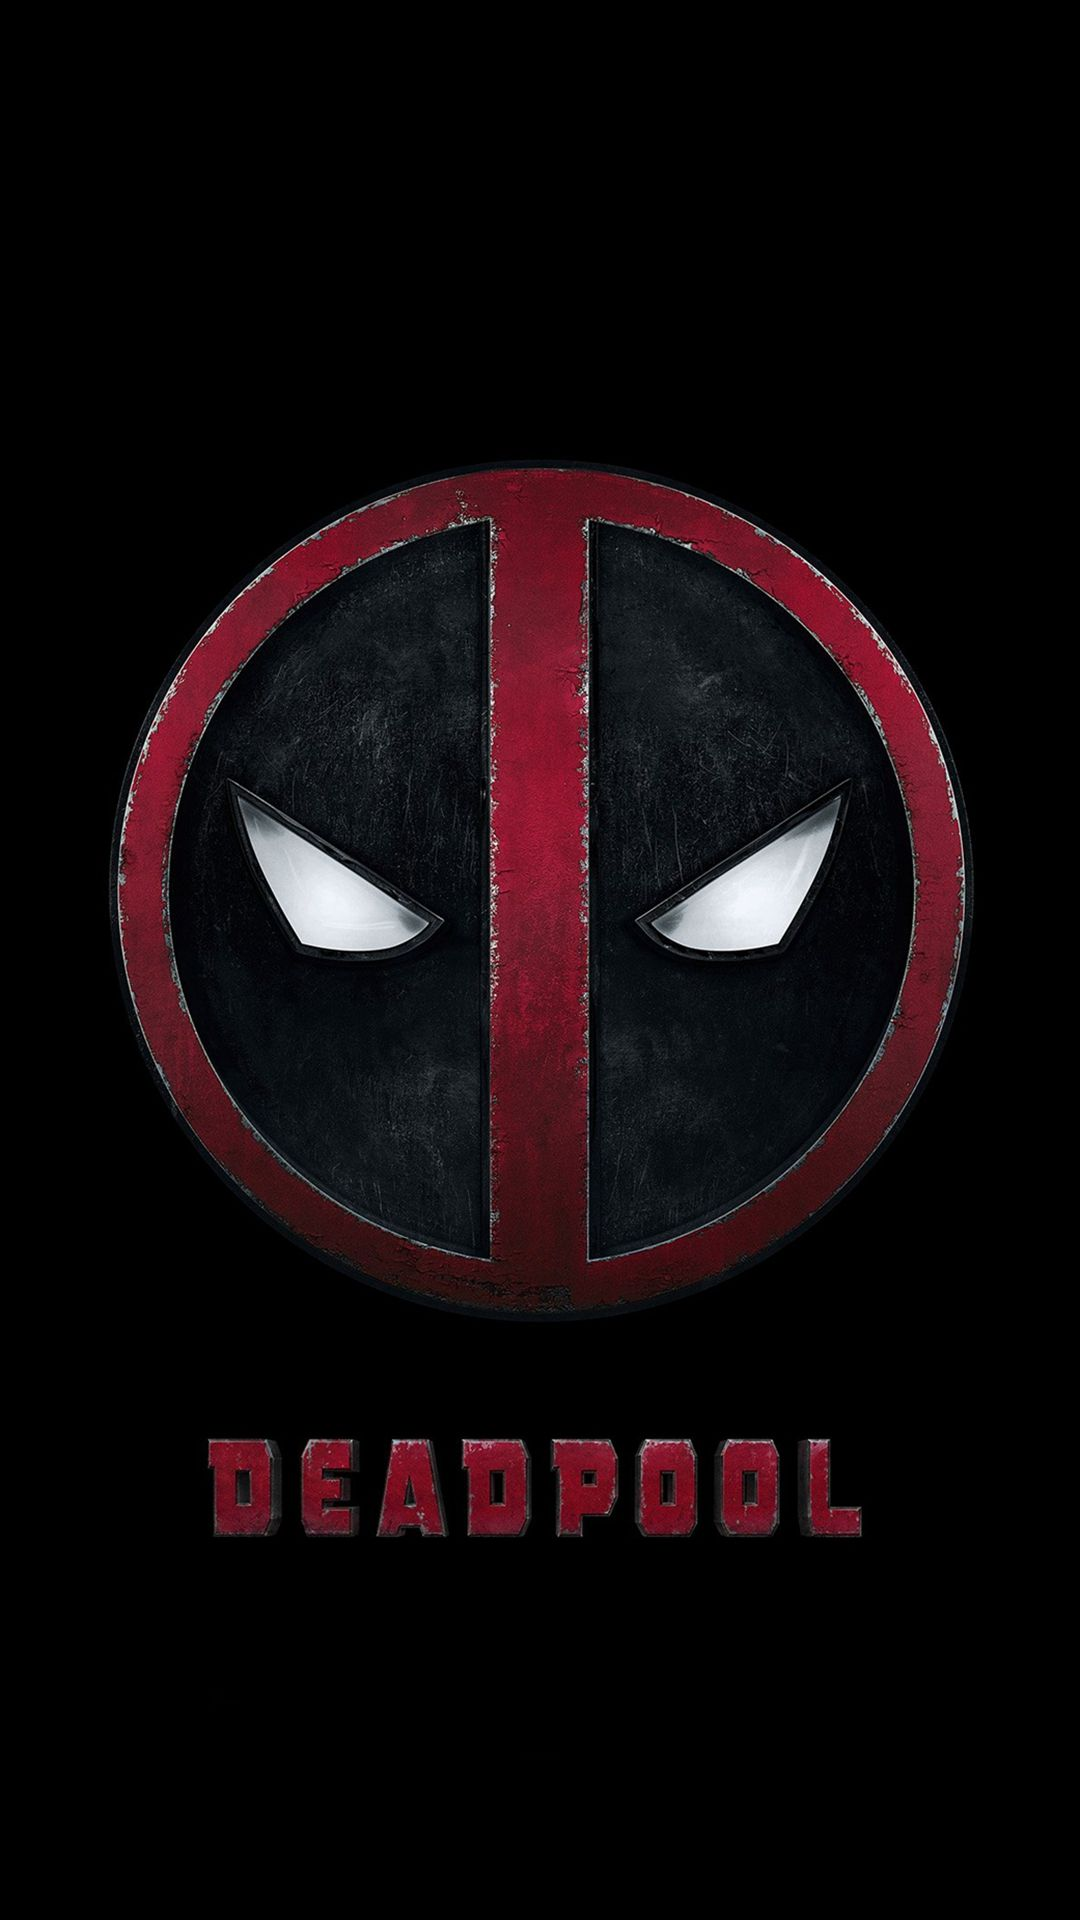 Deadpool Logo Dark Art Hero Iphone  Plus Wallpaper Deadpool Movie Poster